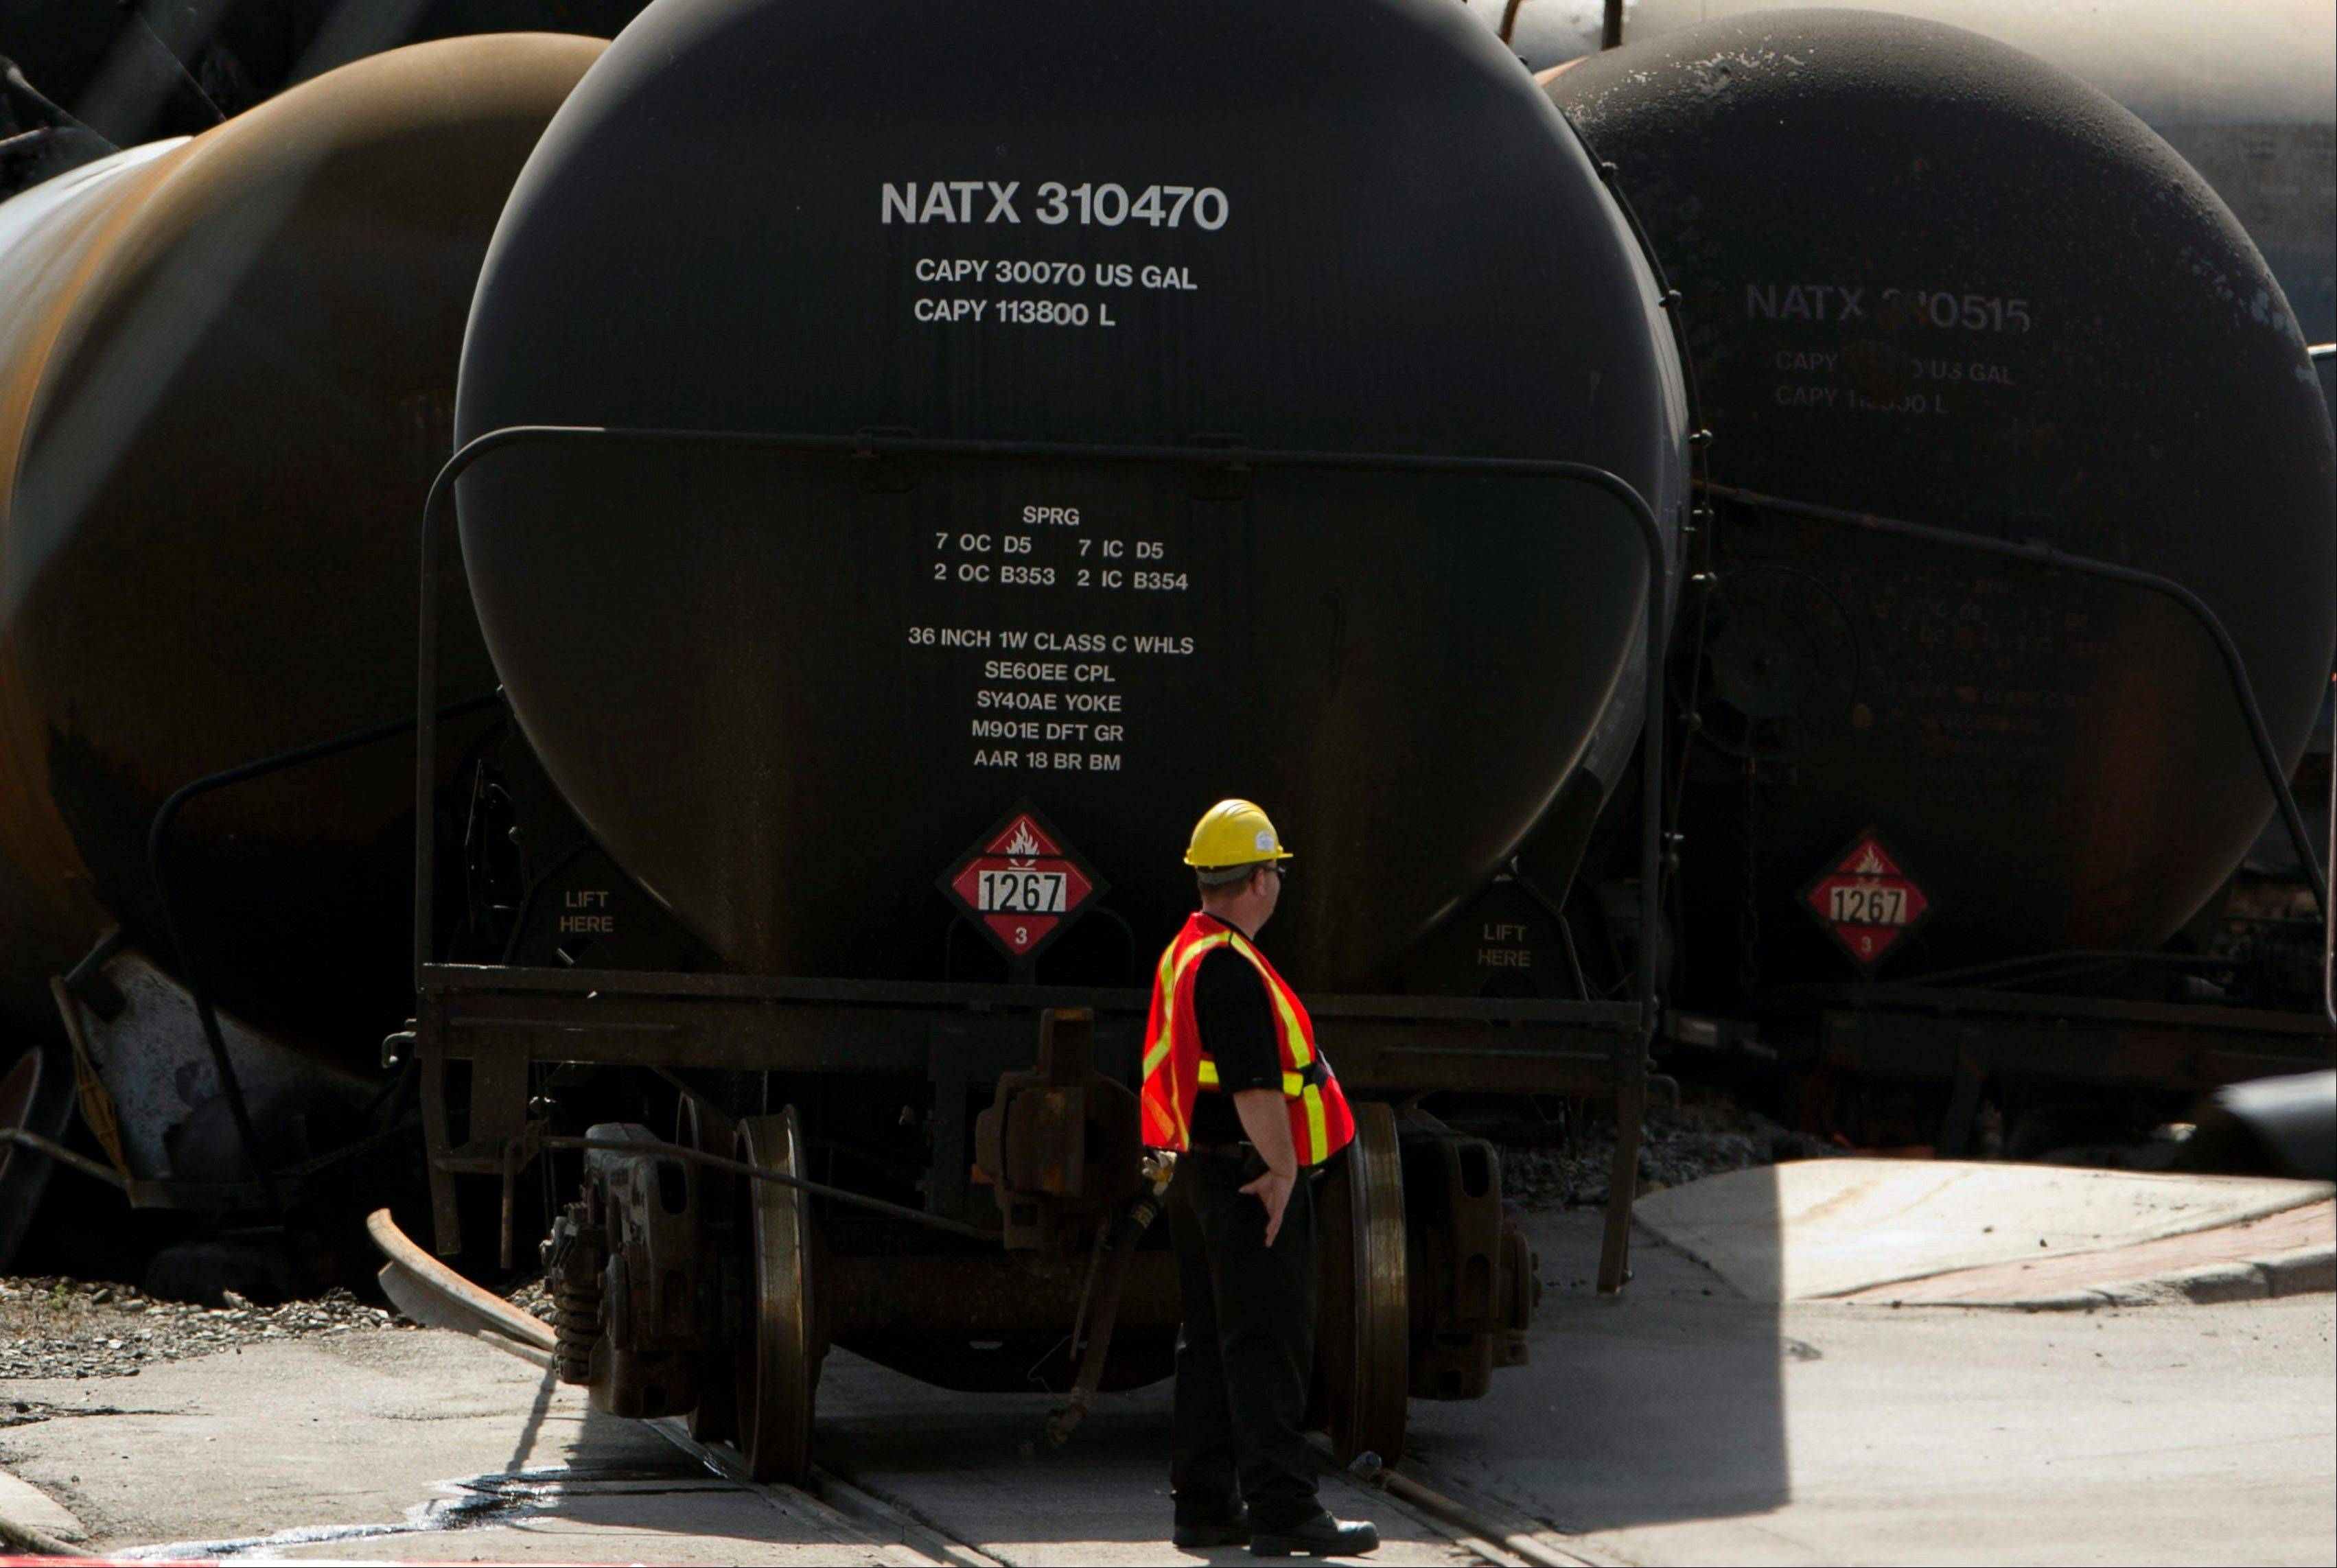 Work continues at the crash site in Lac-Megantic, Quebec of a train that derailed igniting tanker cars carrying crude oil that killed 50 people.